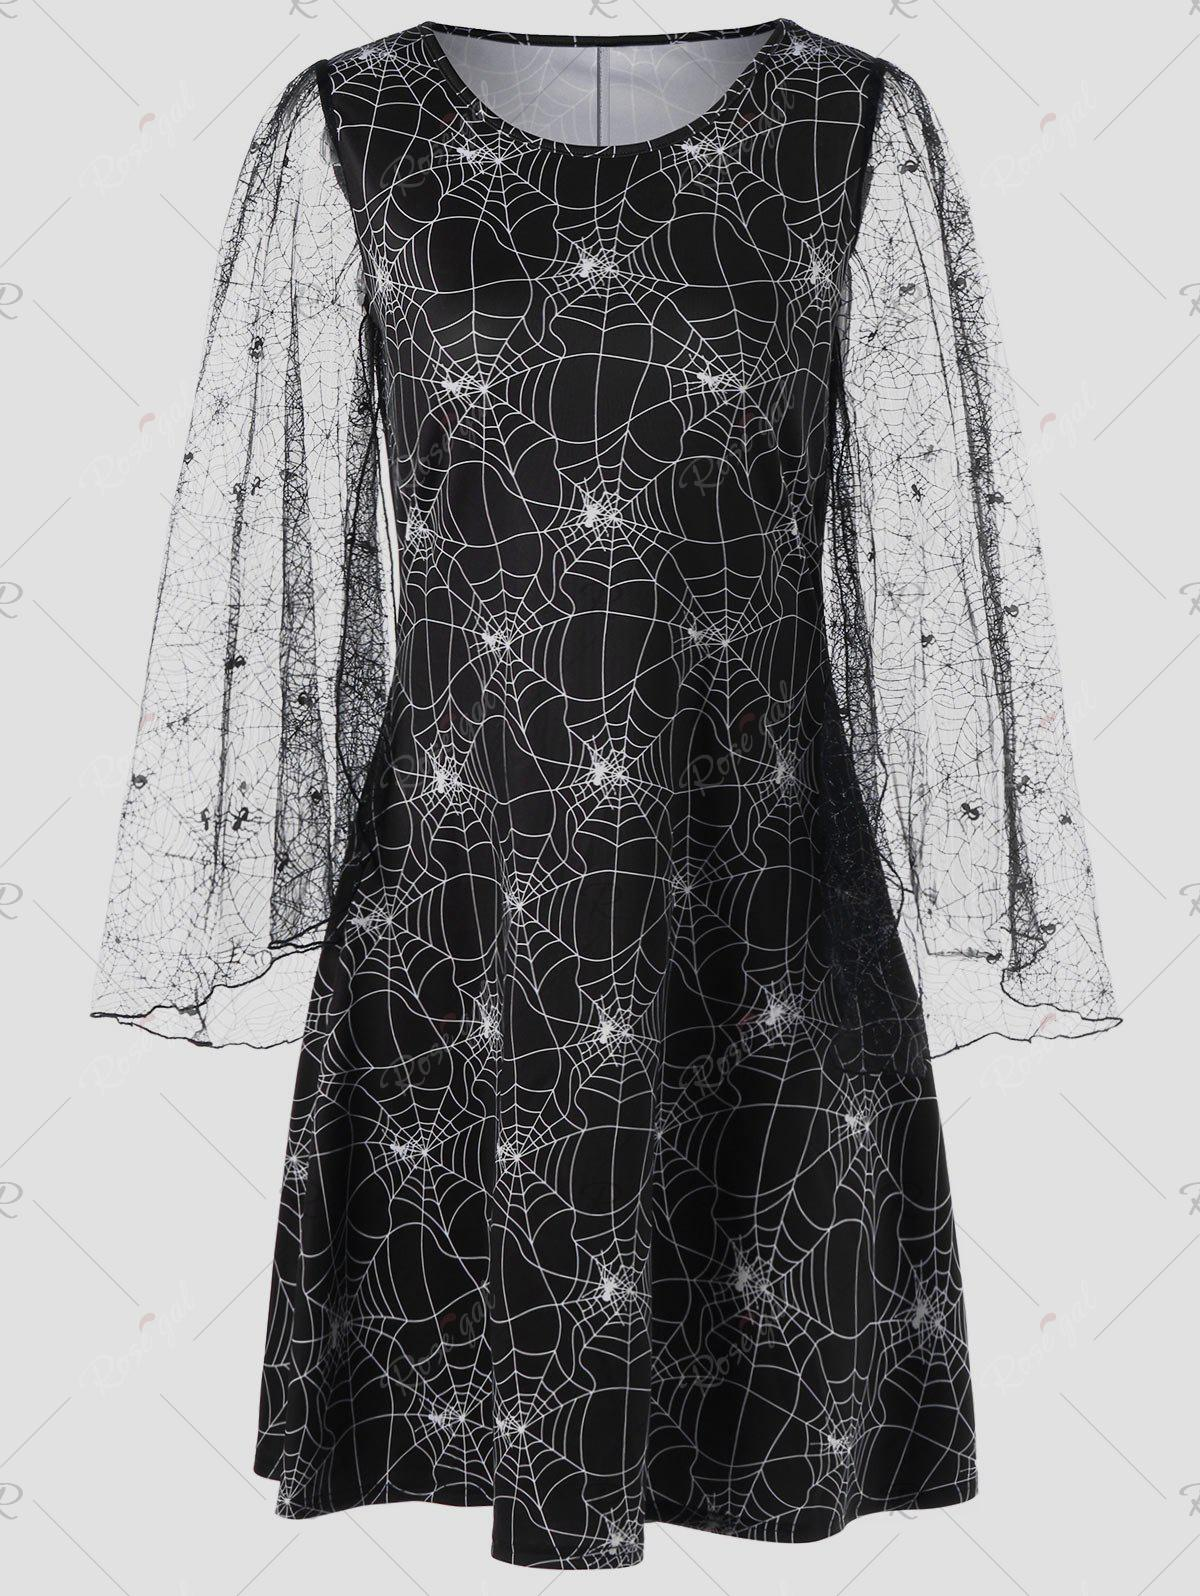 Chic Halloween Sheer Plus Size Spider Web Dress